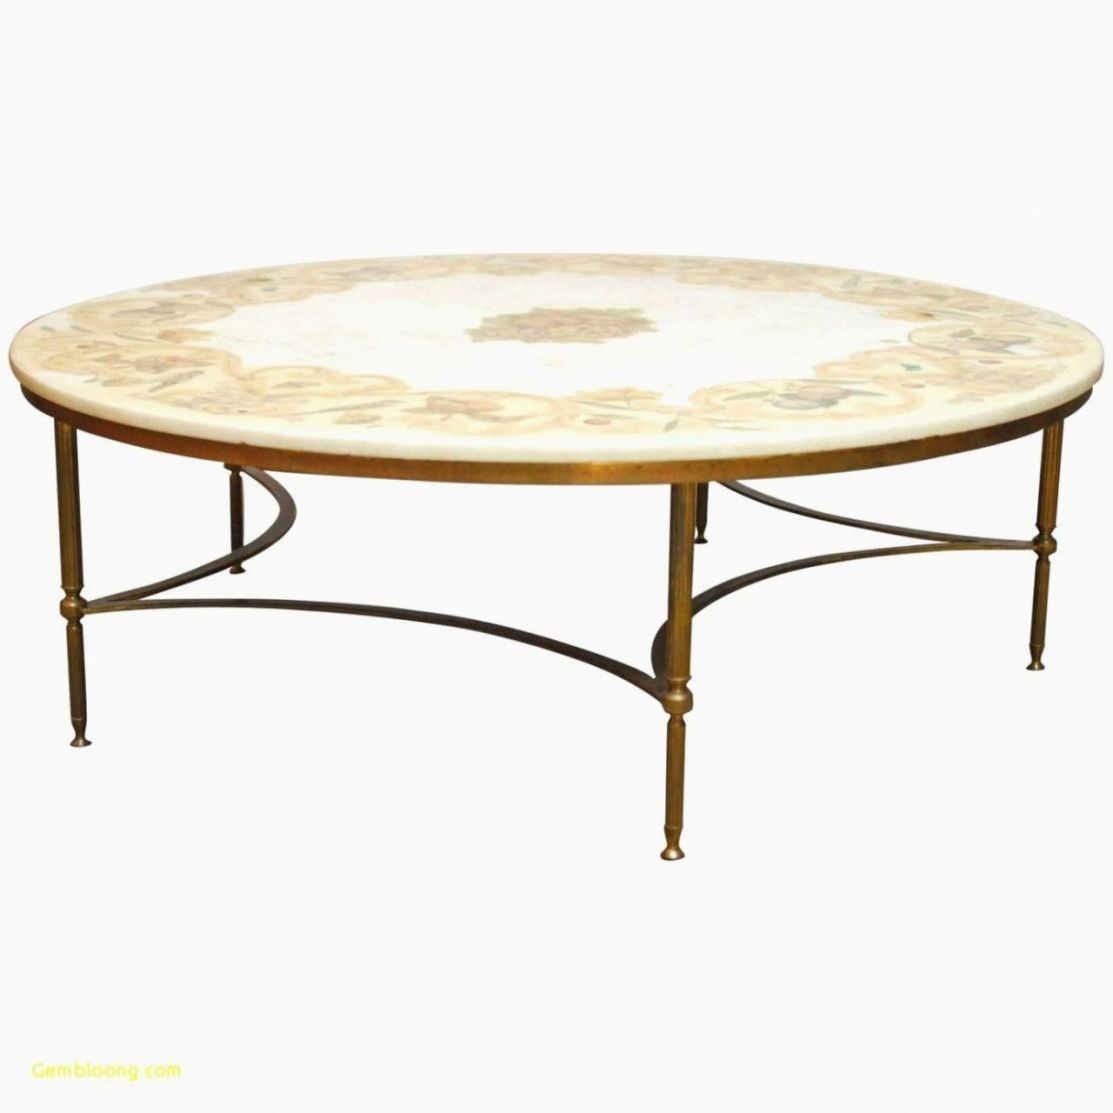 Cheap Extra Large Round Coffee Table Decor And Decorating Coffee Table [ 1113 x 1113 Pixel ]